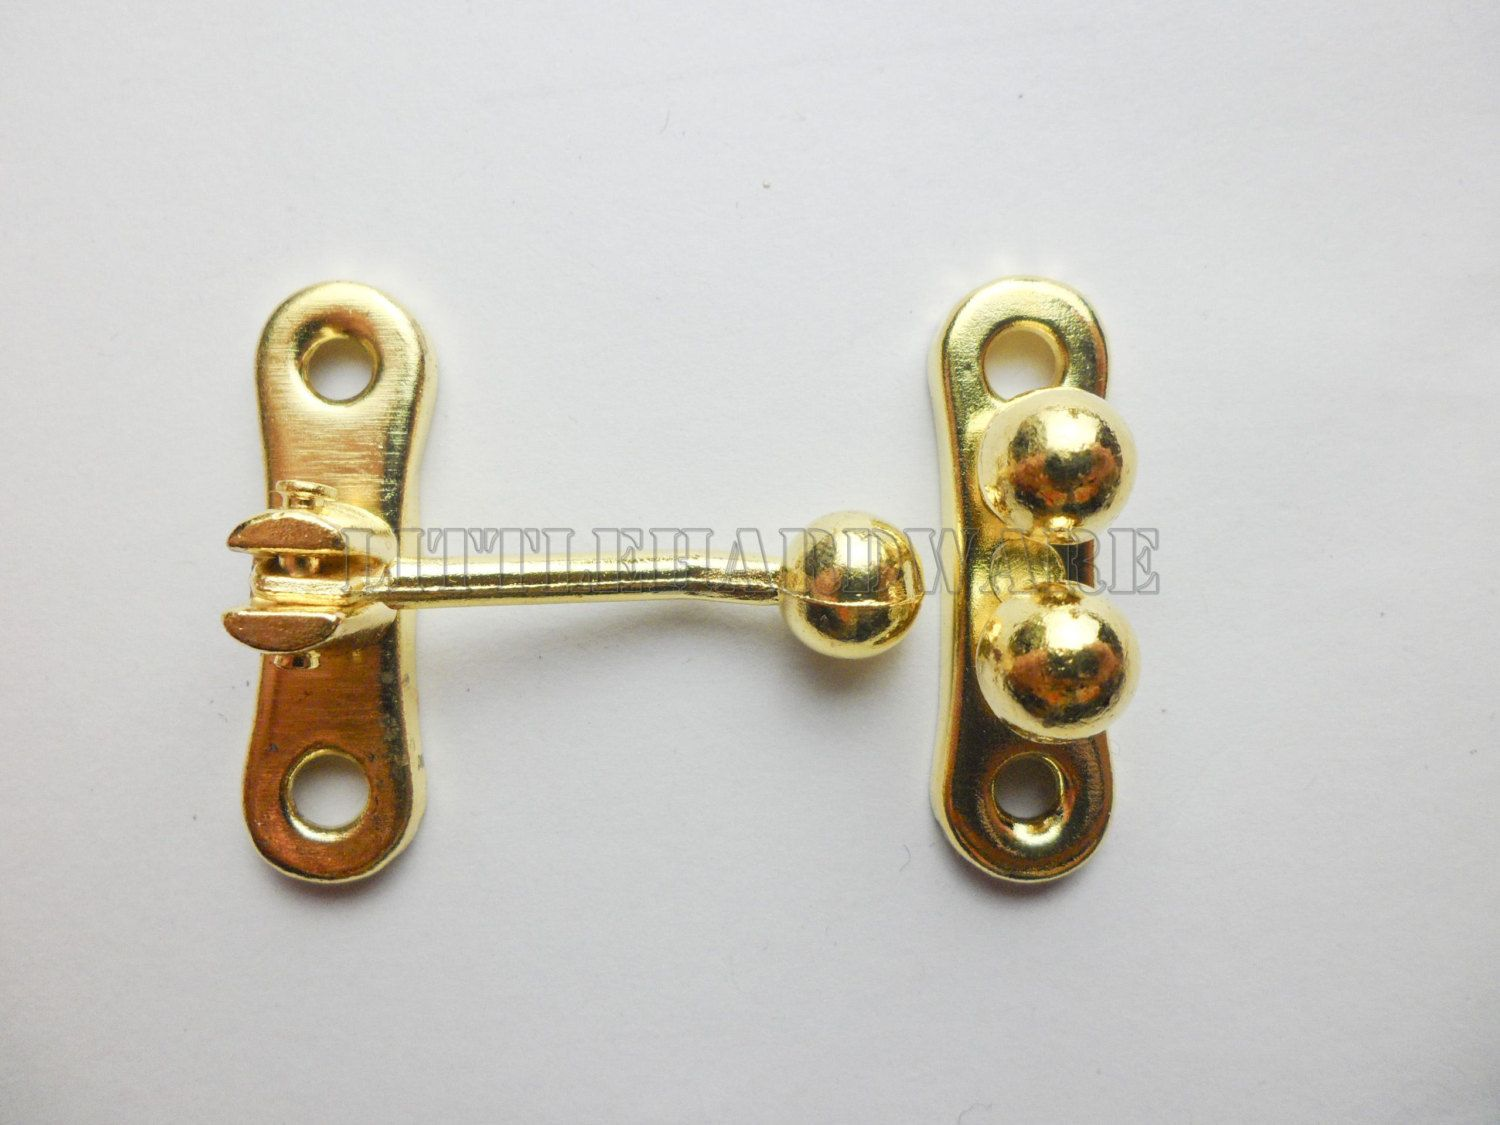 Wholesale Golden Ball Hasp Box Hardware Jewelry Box Latch Gift Boxes Latches Chest Hardware For Wooden Boxes Making Hardware Jewelry Jewelry Box Wooden Boxes